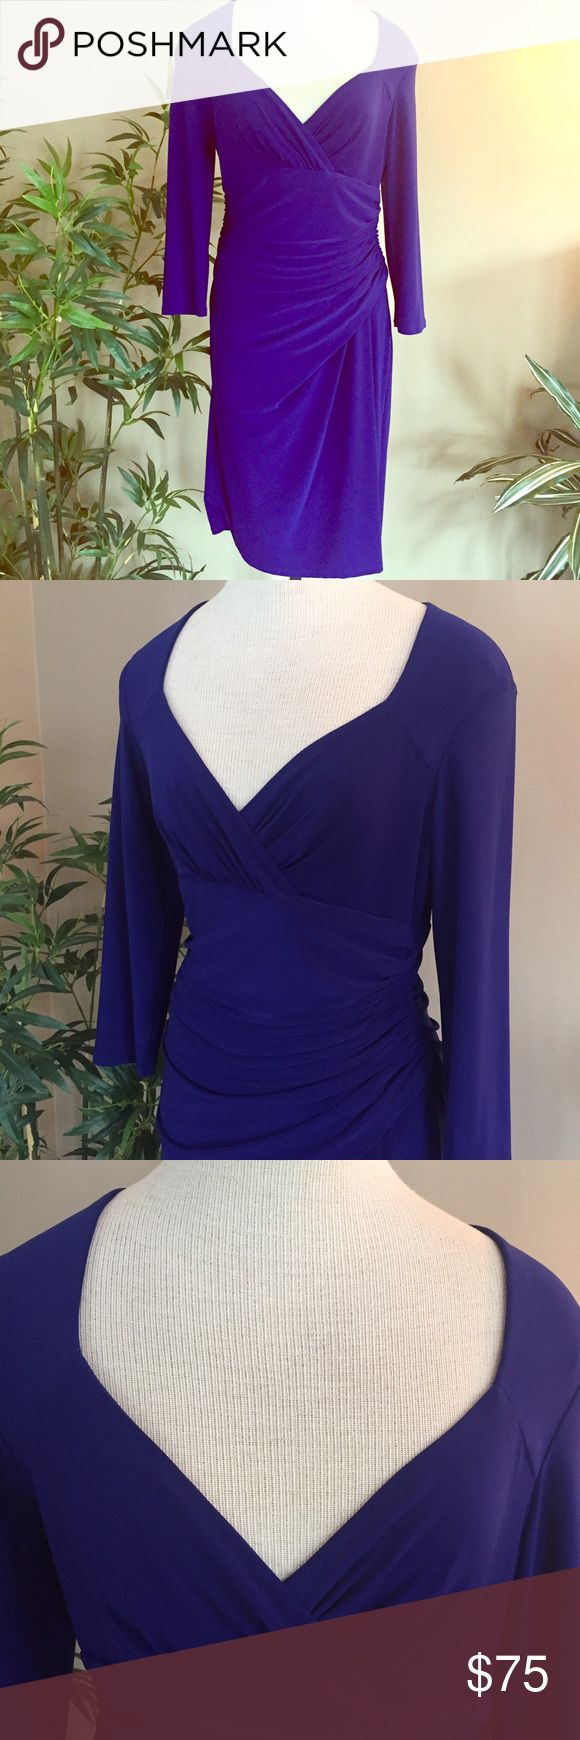 🆕Cobalt Blue Dress Appropriate for work or an evening out. Gathered on the side. Cross front neckline. Excellent used condition, no flaws. Lauren Ralph Lauren Dresses